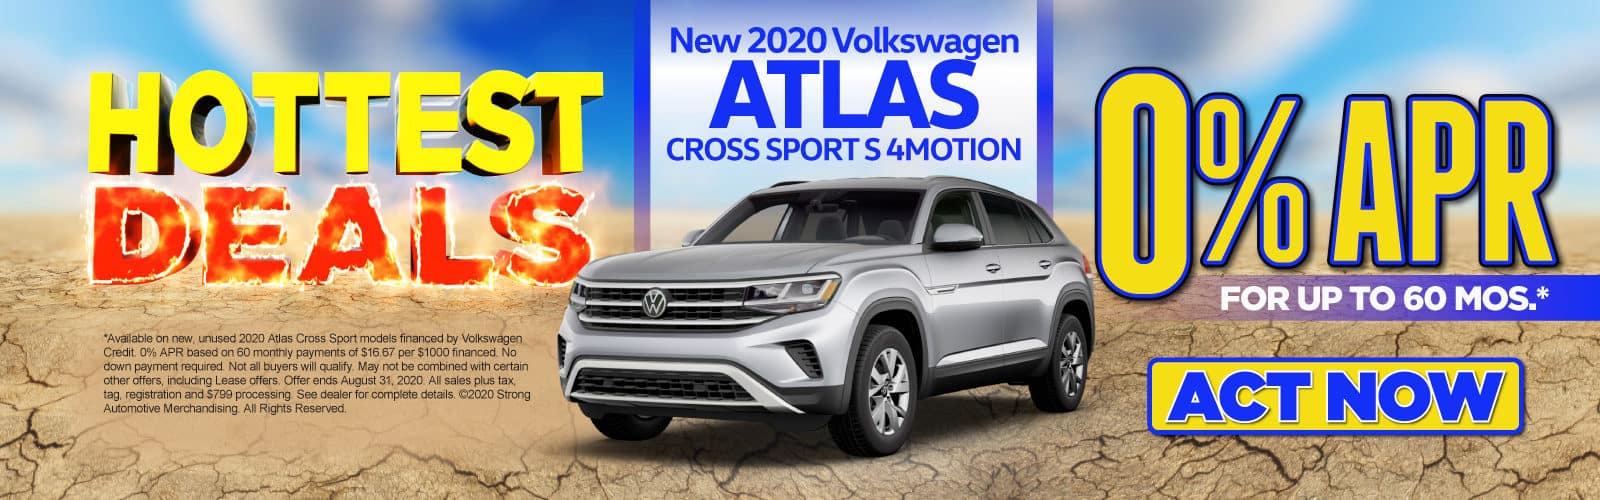 New 2020 Atlas CrossSport - 0% APR for up to 60 months - Act Now